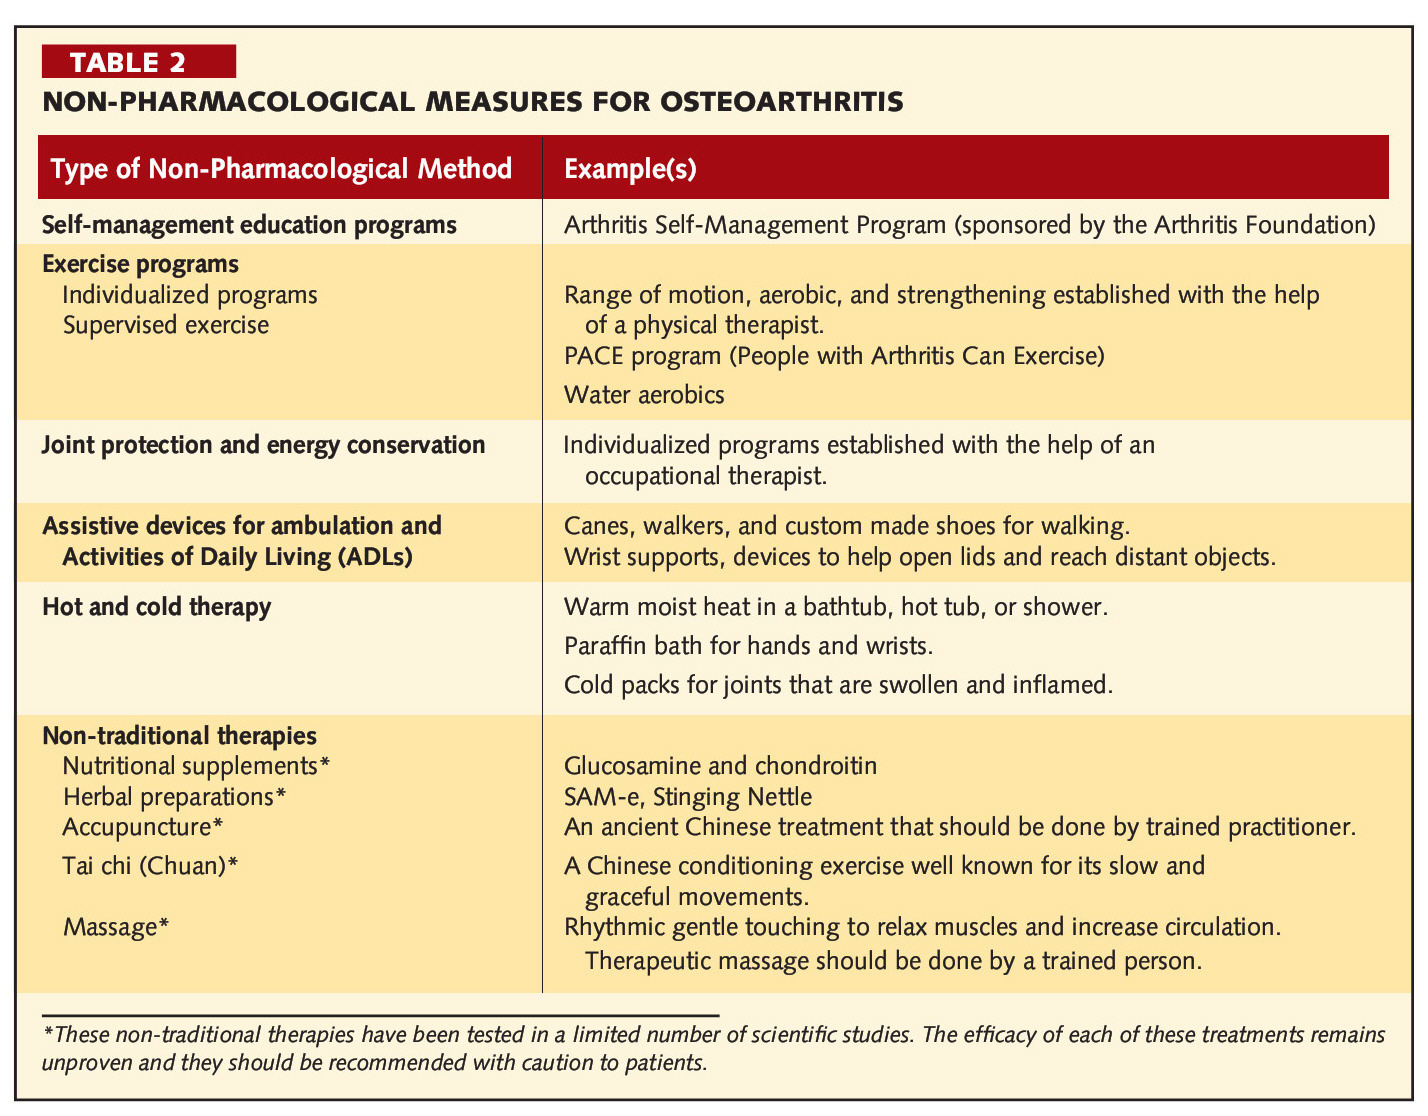 TABLE 2NON-PHARMACOLOGICAL MEASURES FOR OSTEOARTHRITIS